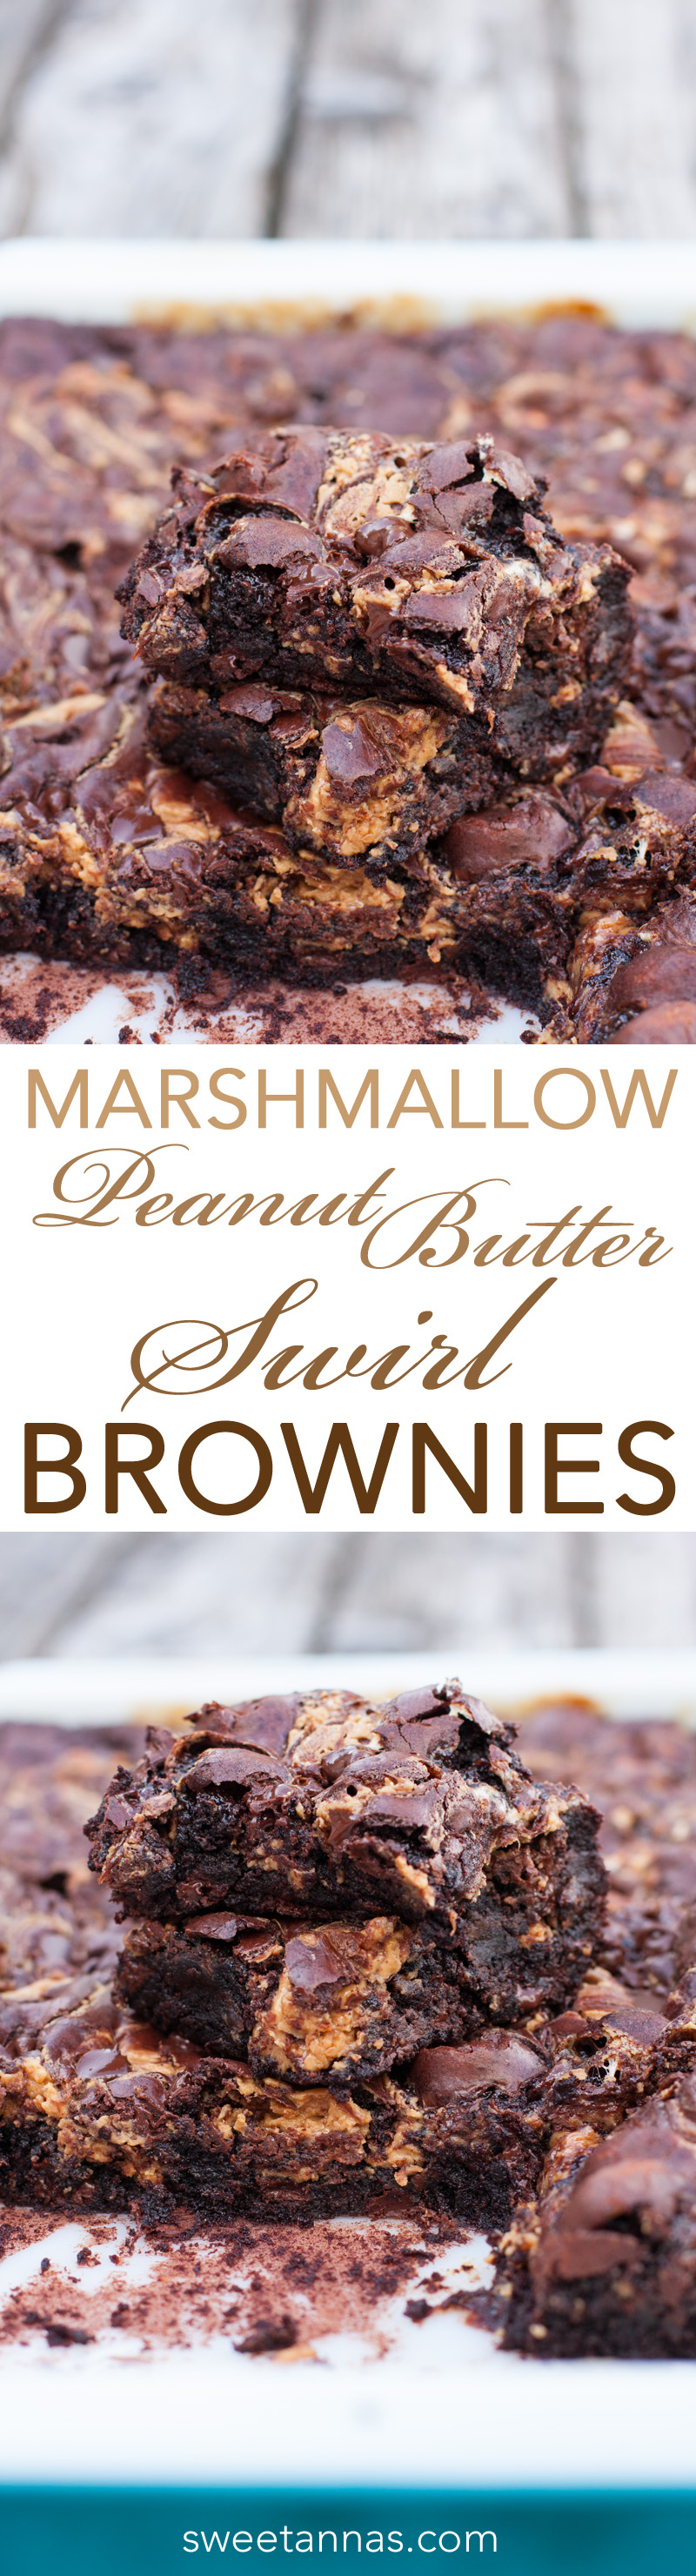 Marshmallow Peanut Butter Swirl MADE-FROM-SCRATCH Brownies! (Gluten Free OR Gluten Full!) | sweetannas.com